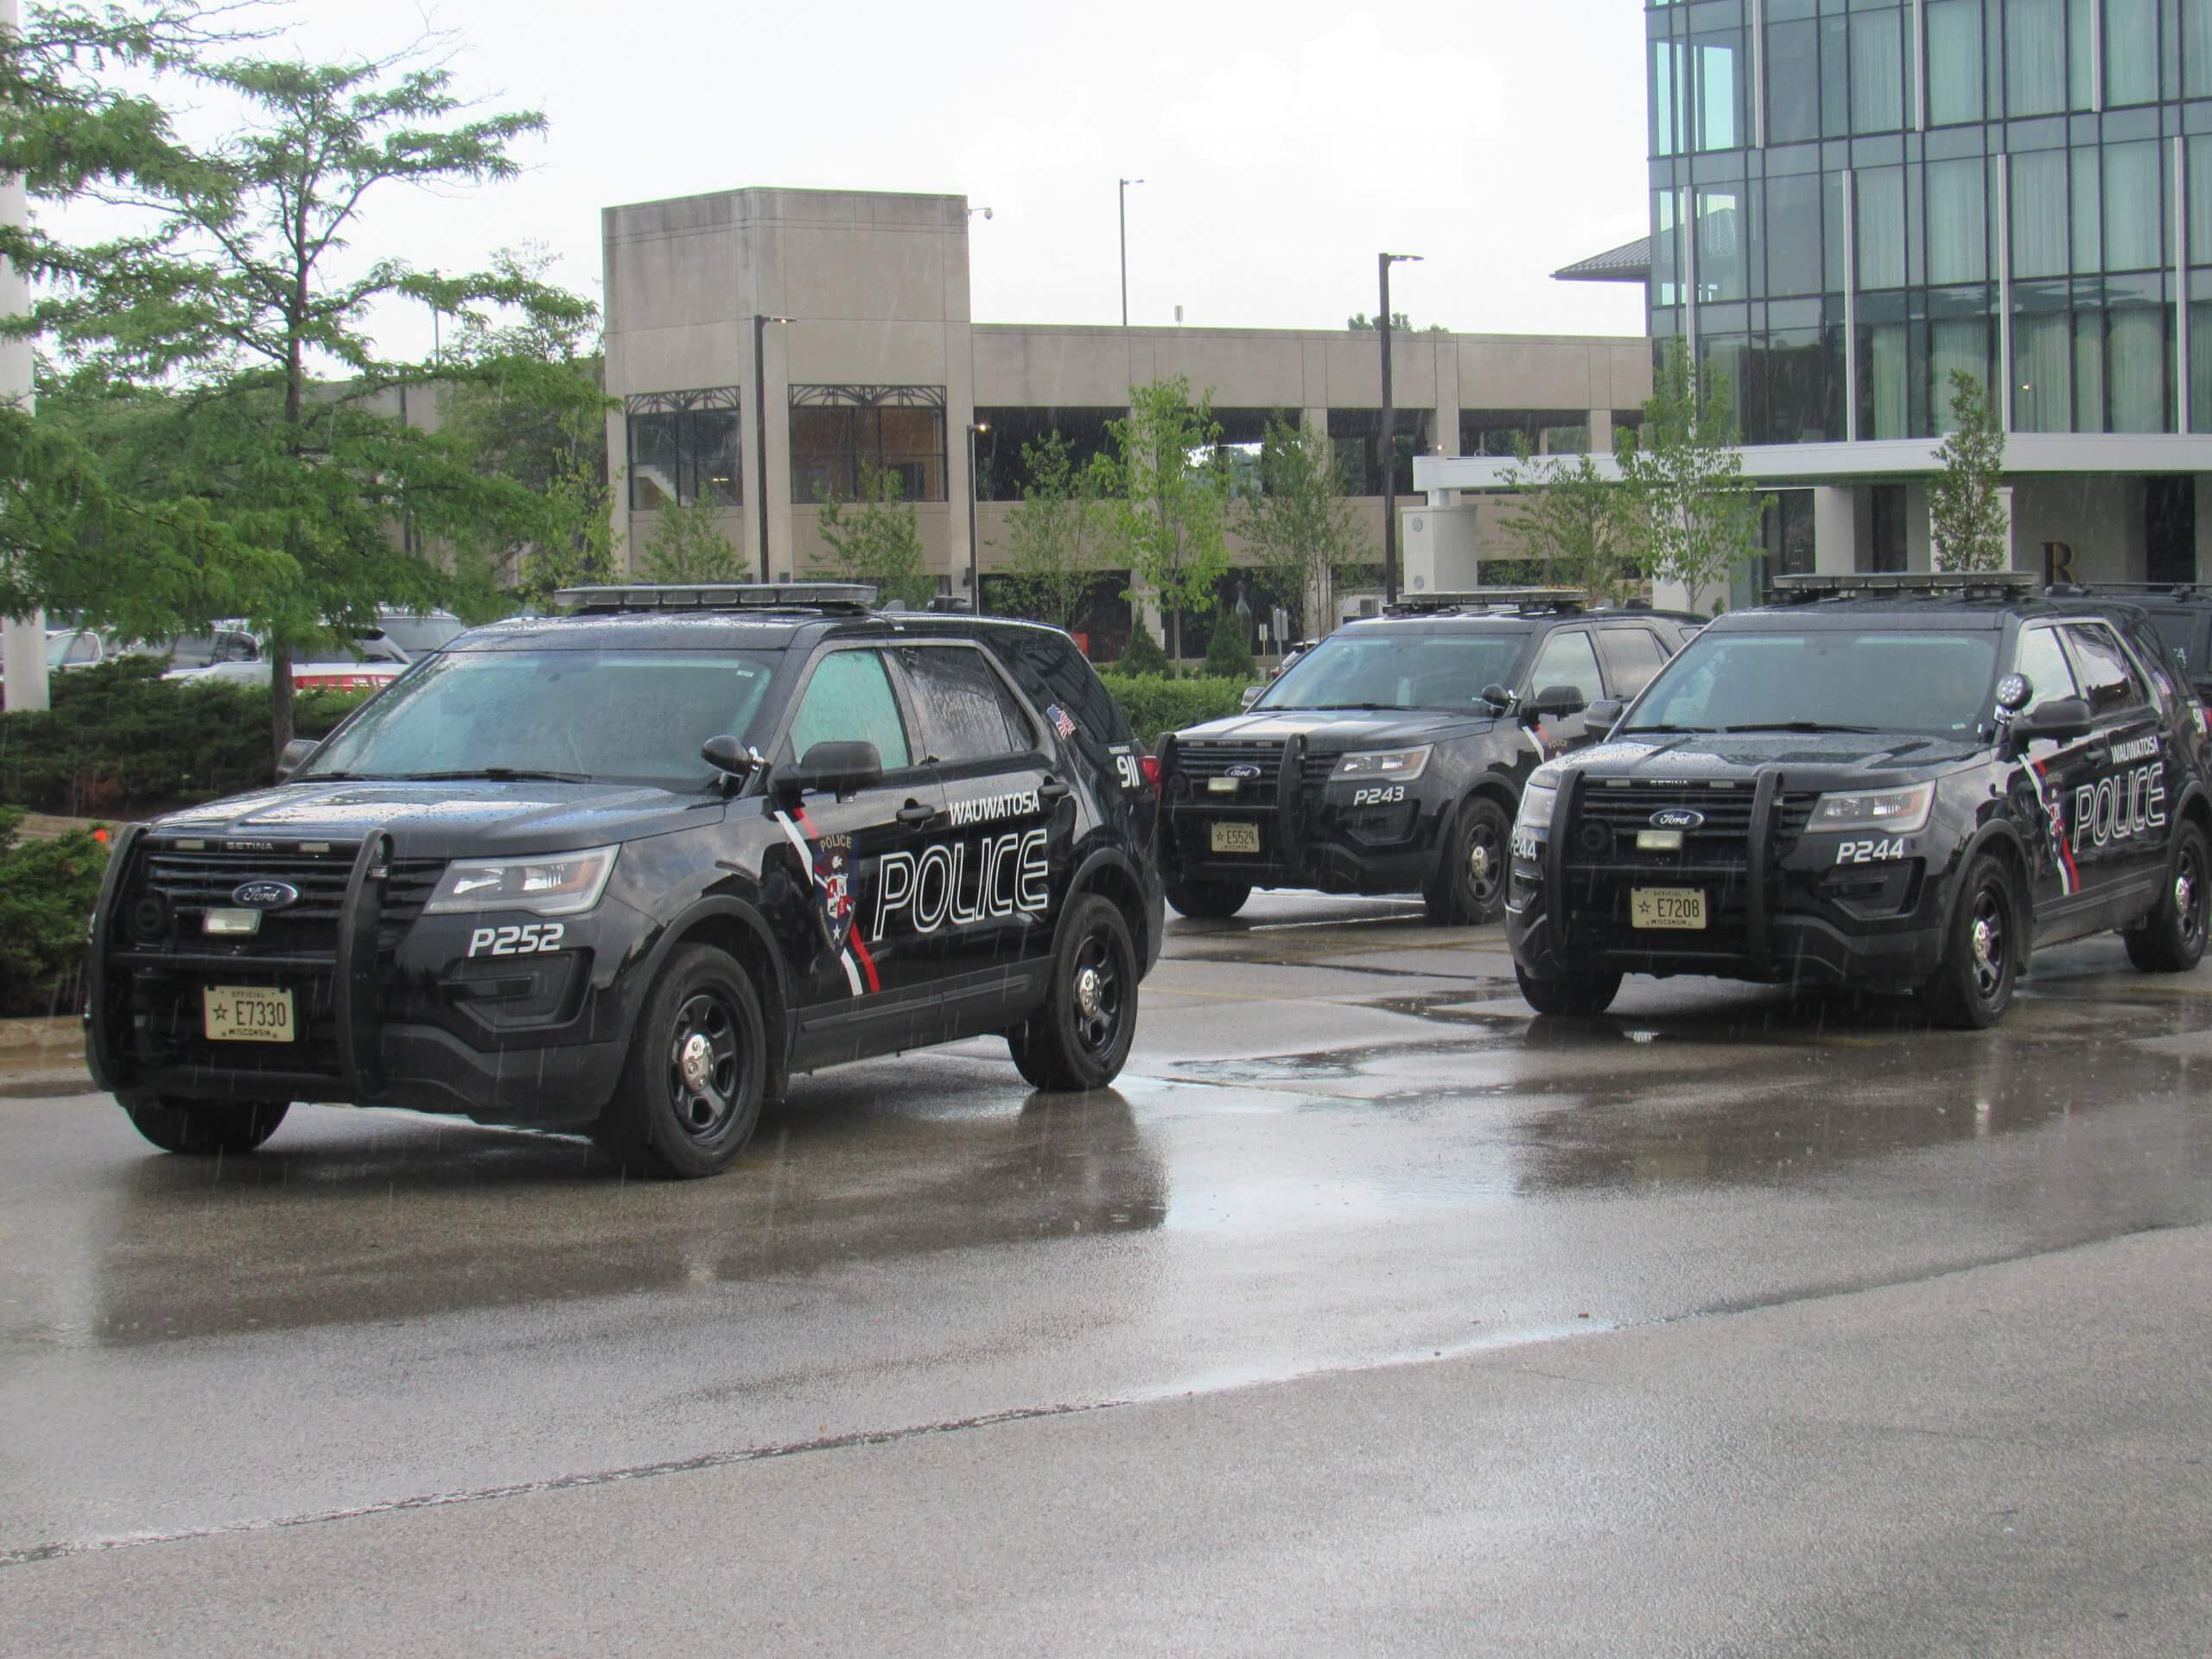 Wauwatosa Police Department squad cars responding during a standoff with protesters on July 7, 2020. (Photo by Isiah Holmes)